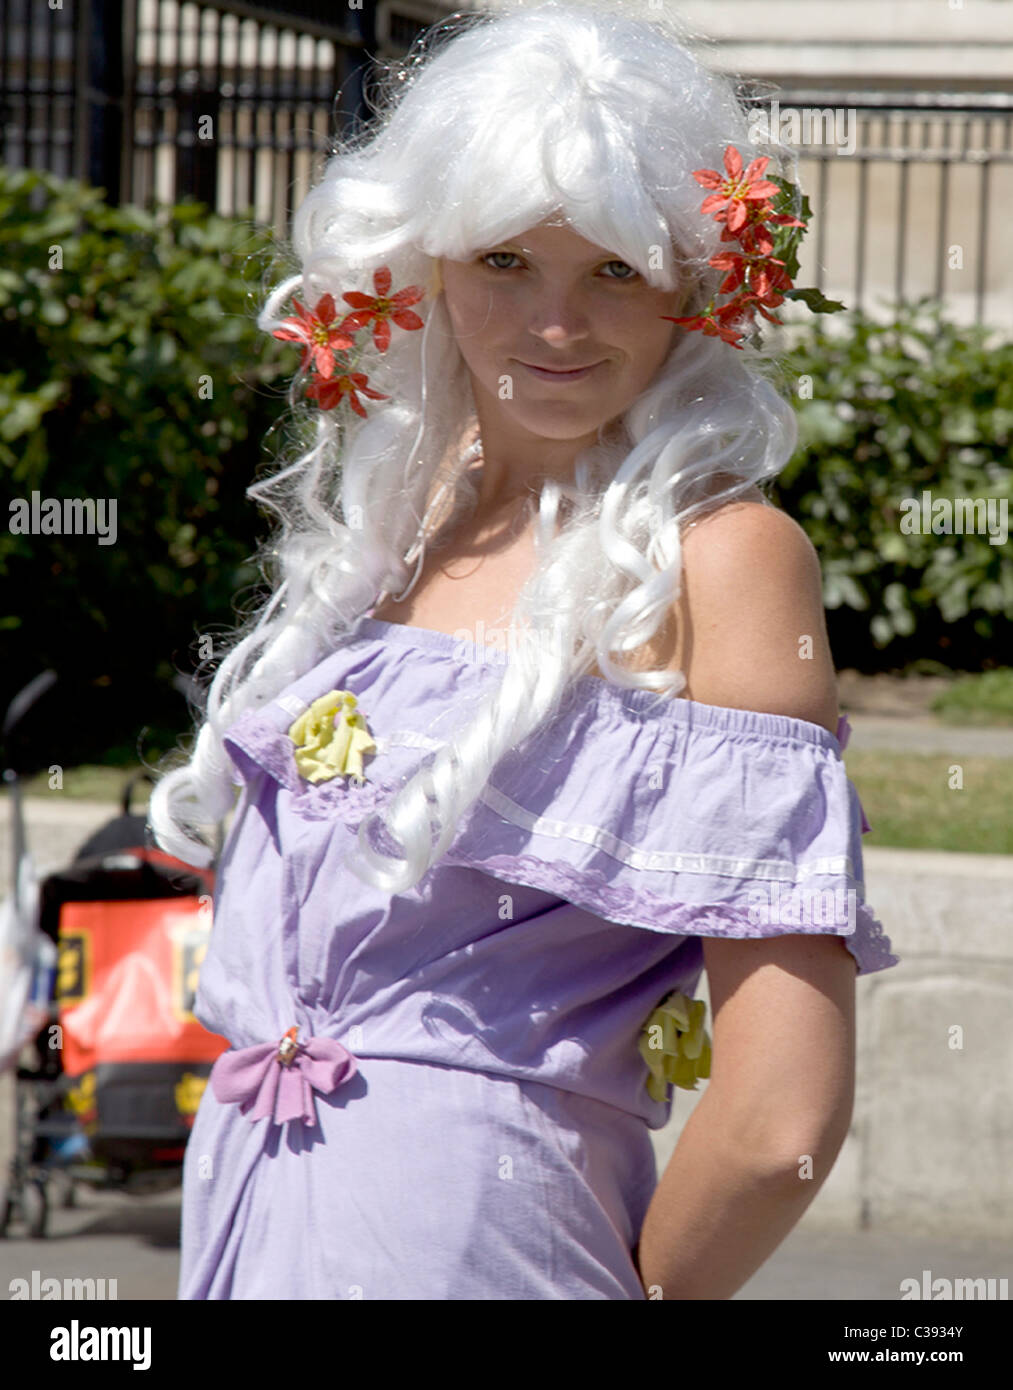 A smiling young girl in a purple dress dances for the public in Trafalgar Square on a sunny May afternoon. - Stock Image